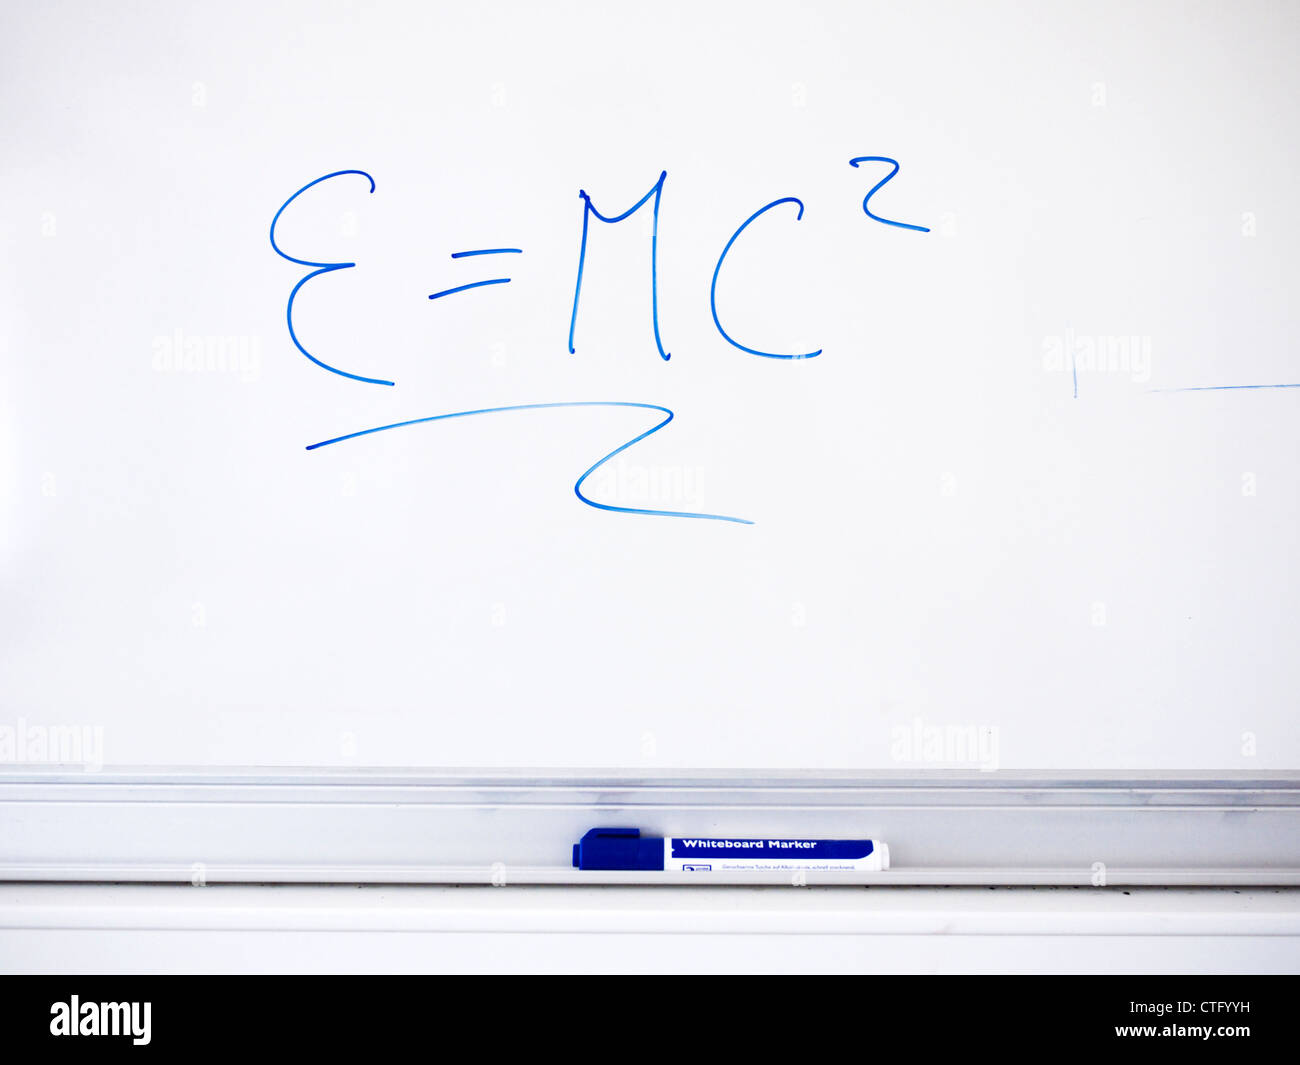 Whiteboard with theroy of relativity written upon - Stock Image